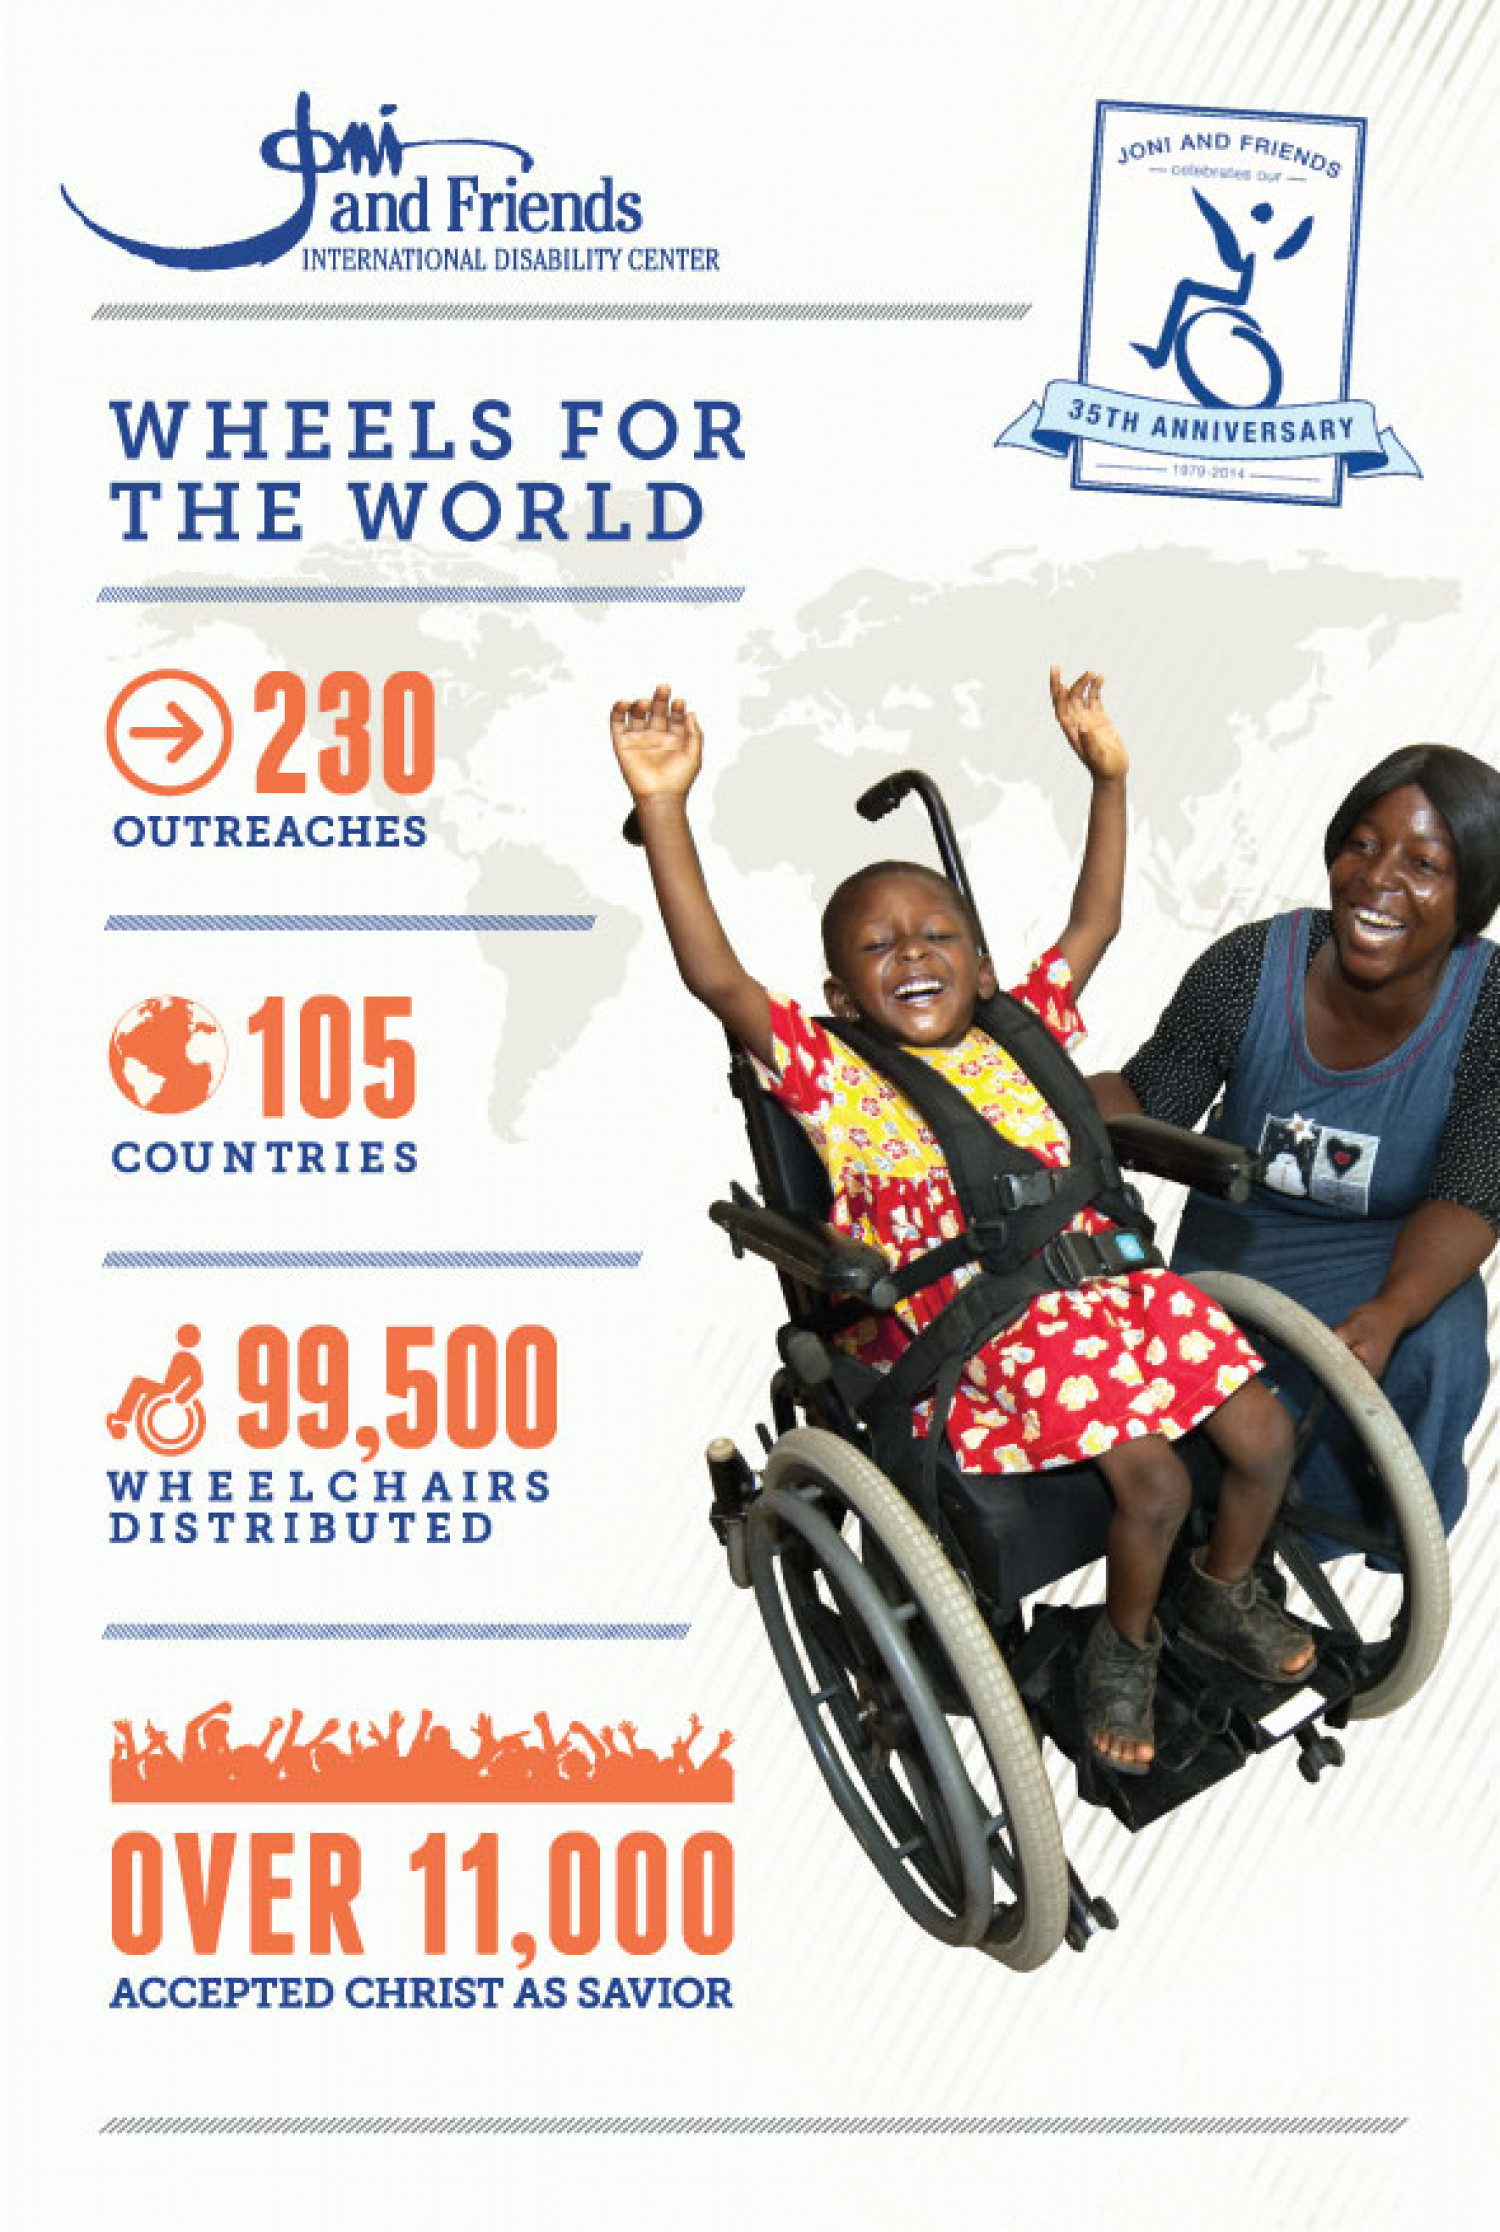 Joni and Friends - Wheels For The World Infographic